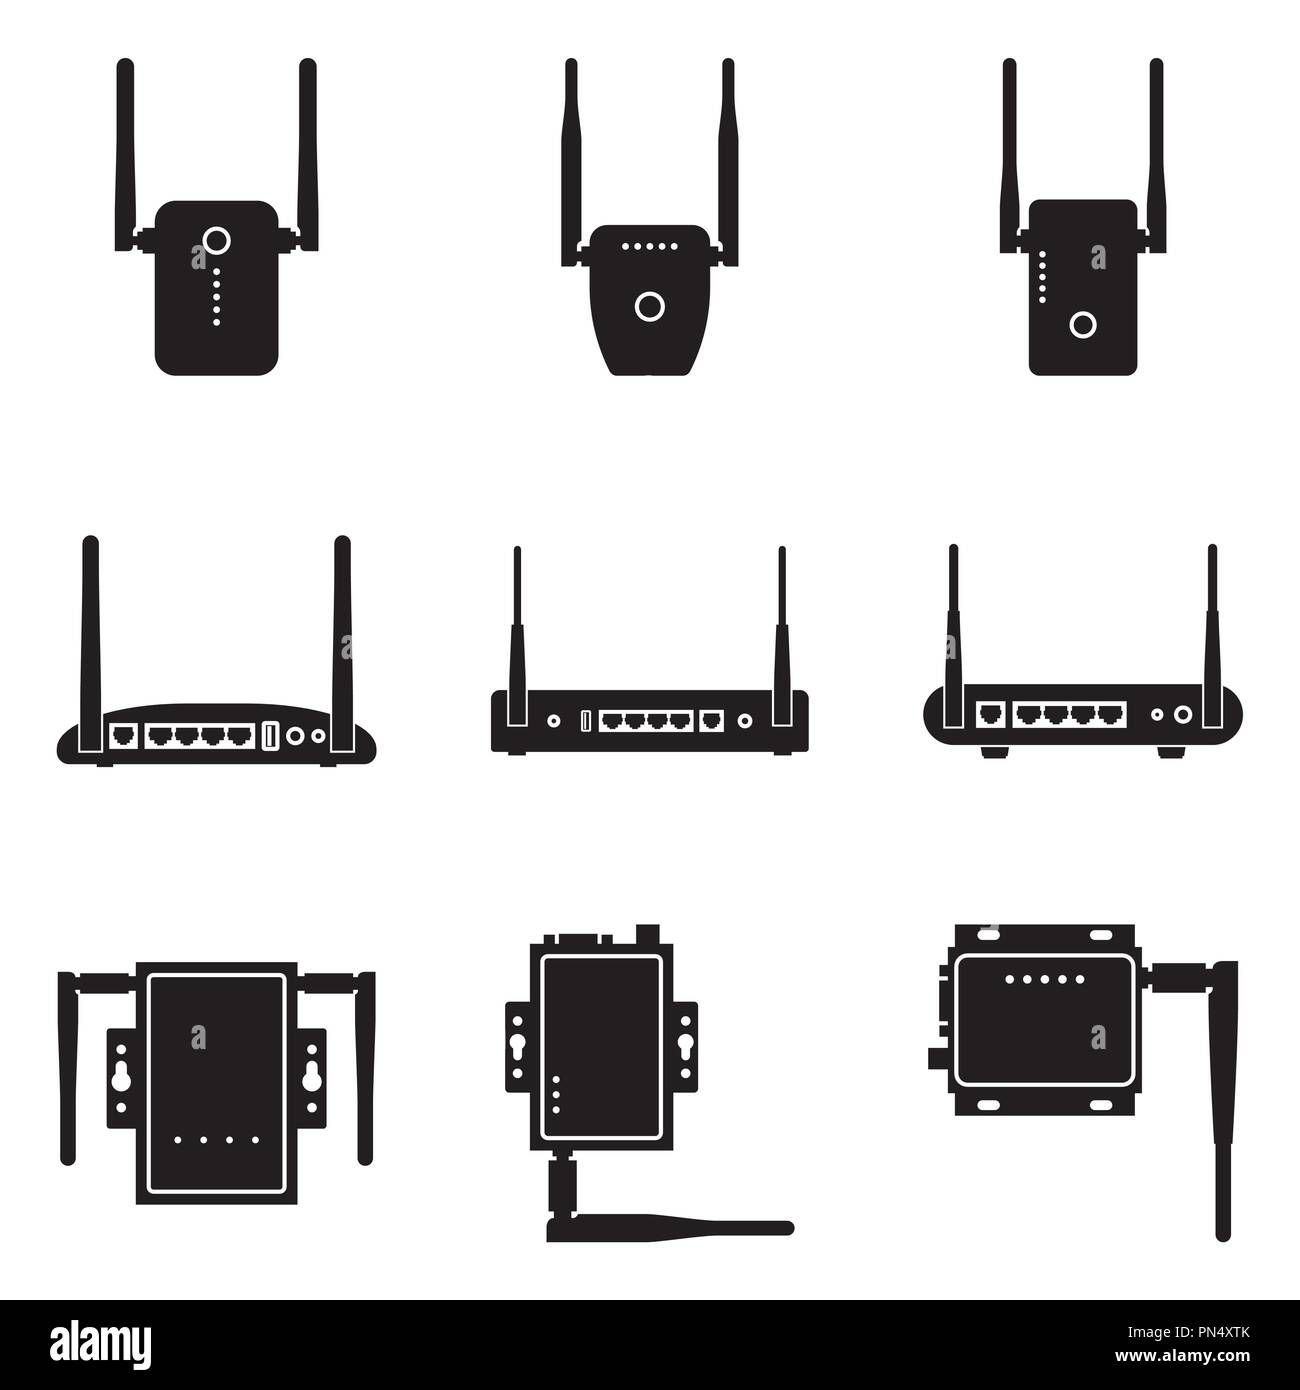 Wireless deviceicon. Modem, router and repeater. Silhouette vector - Stock Image